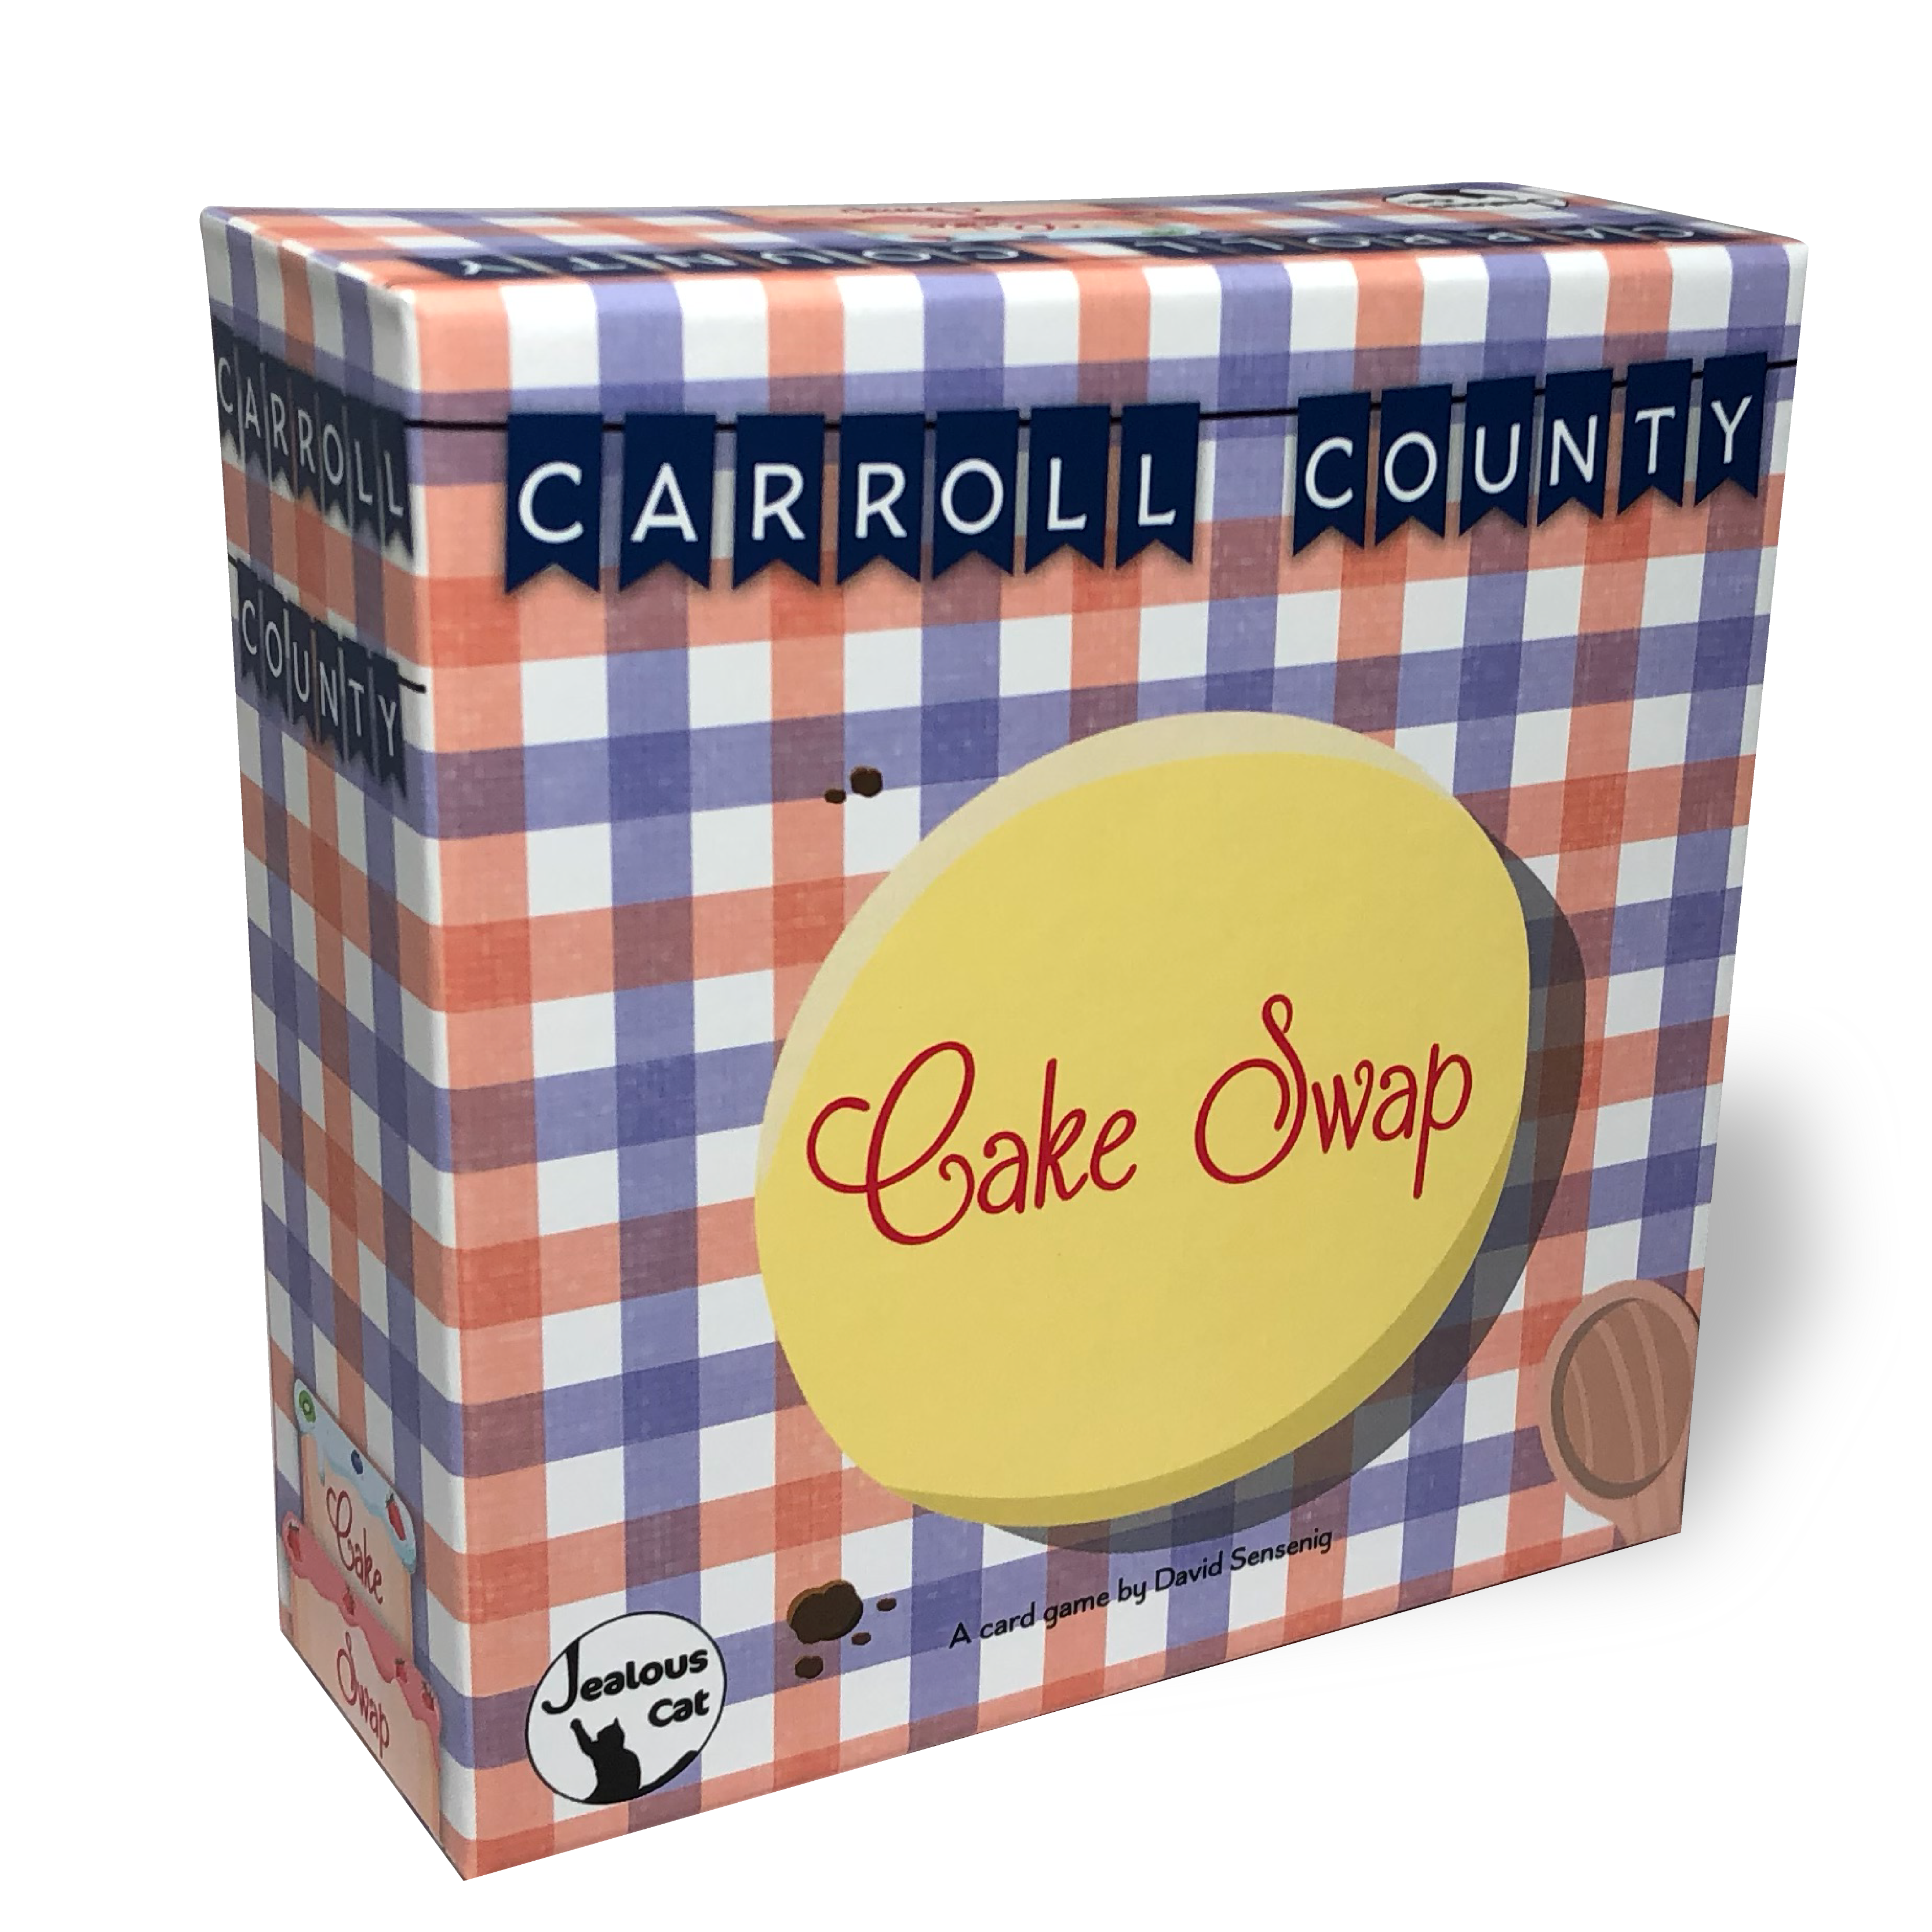 Carroll County Cake Swap